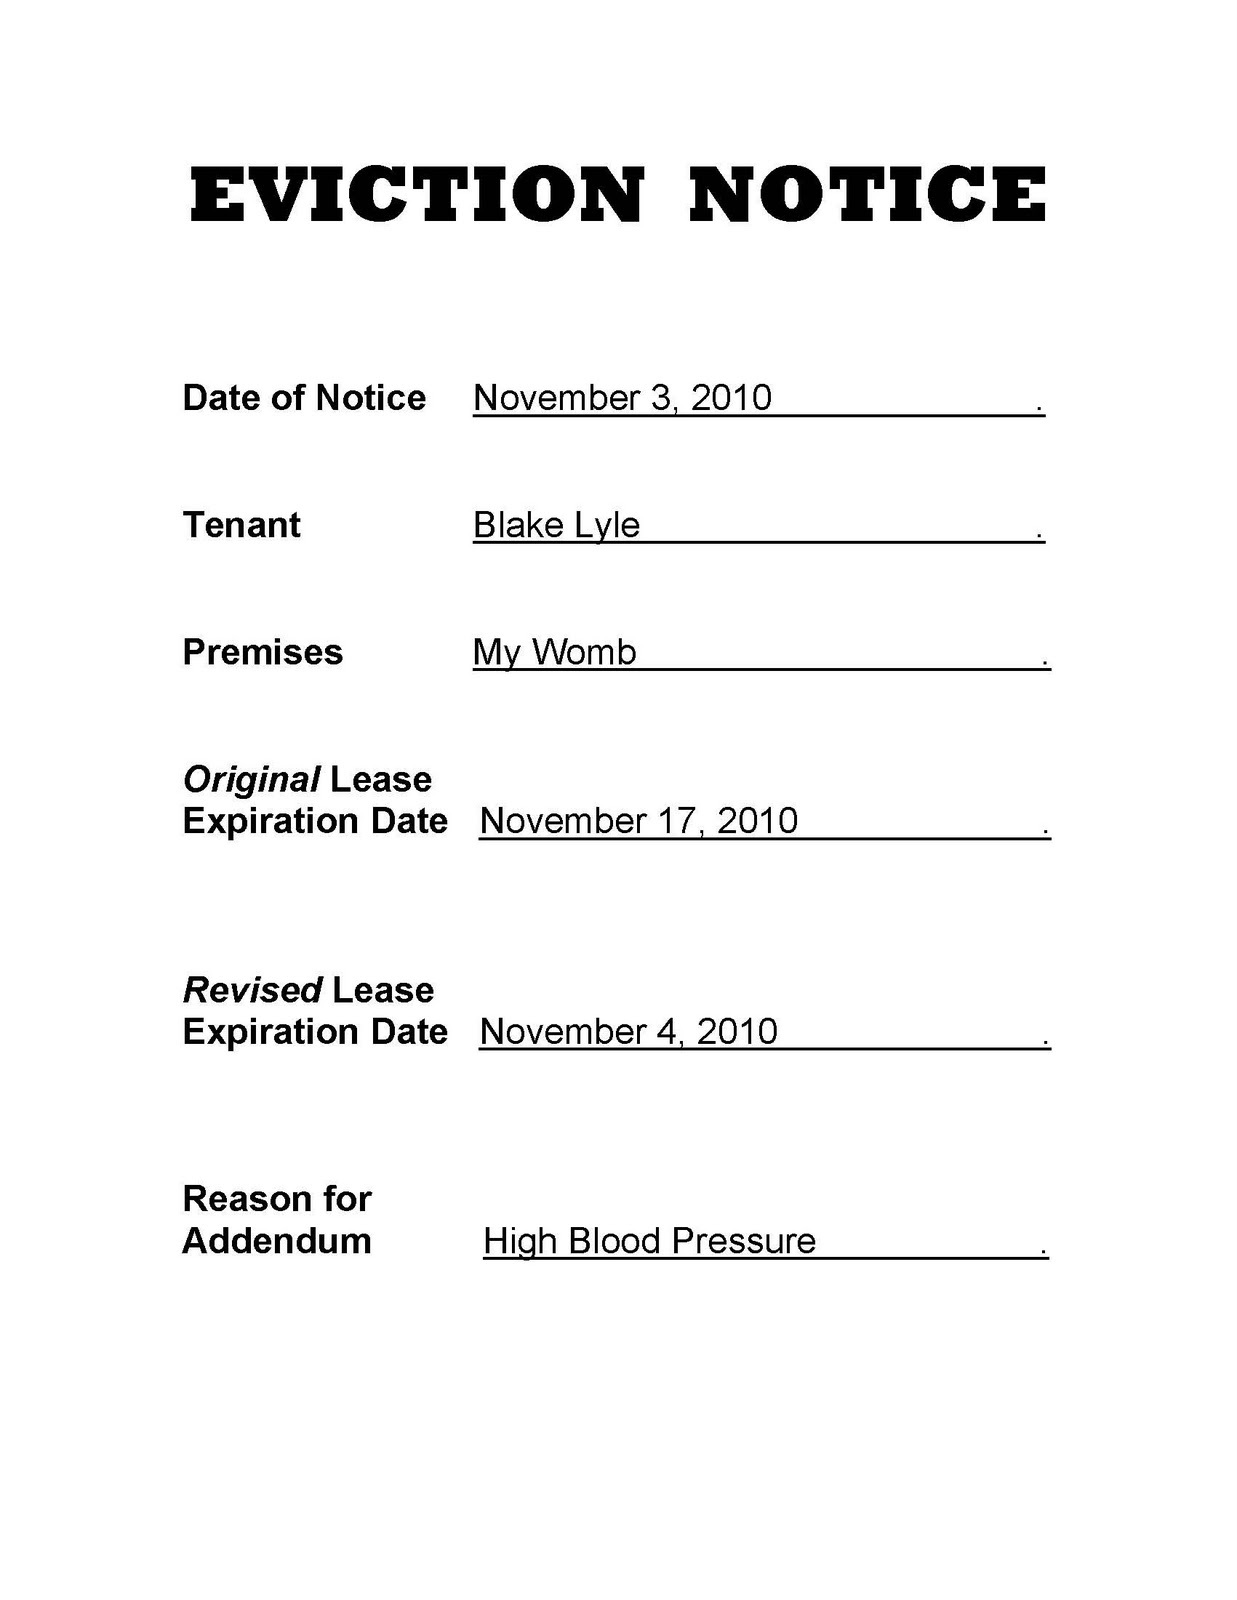 Tenant Eviction Notice Form Ontario wanted posters templates – Tenant Eviction Notice Template